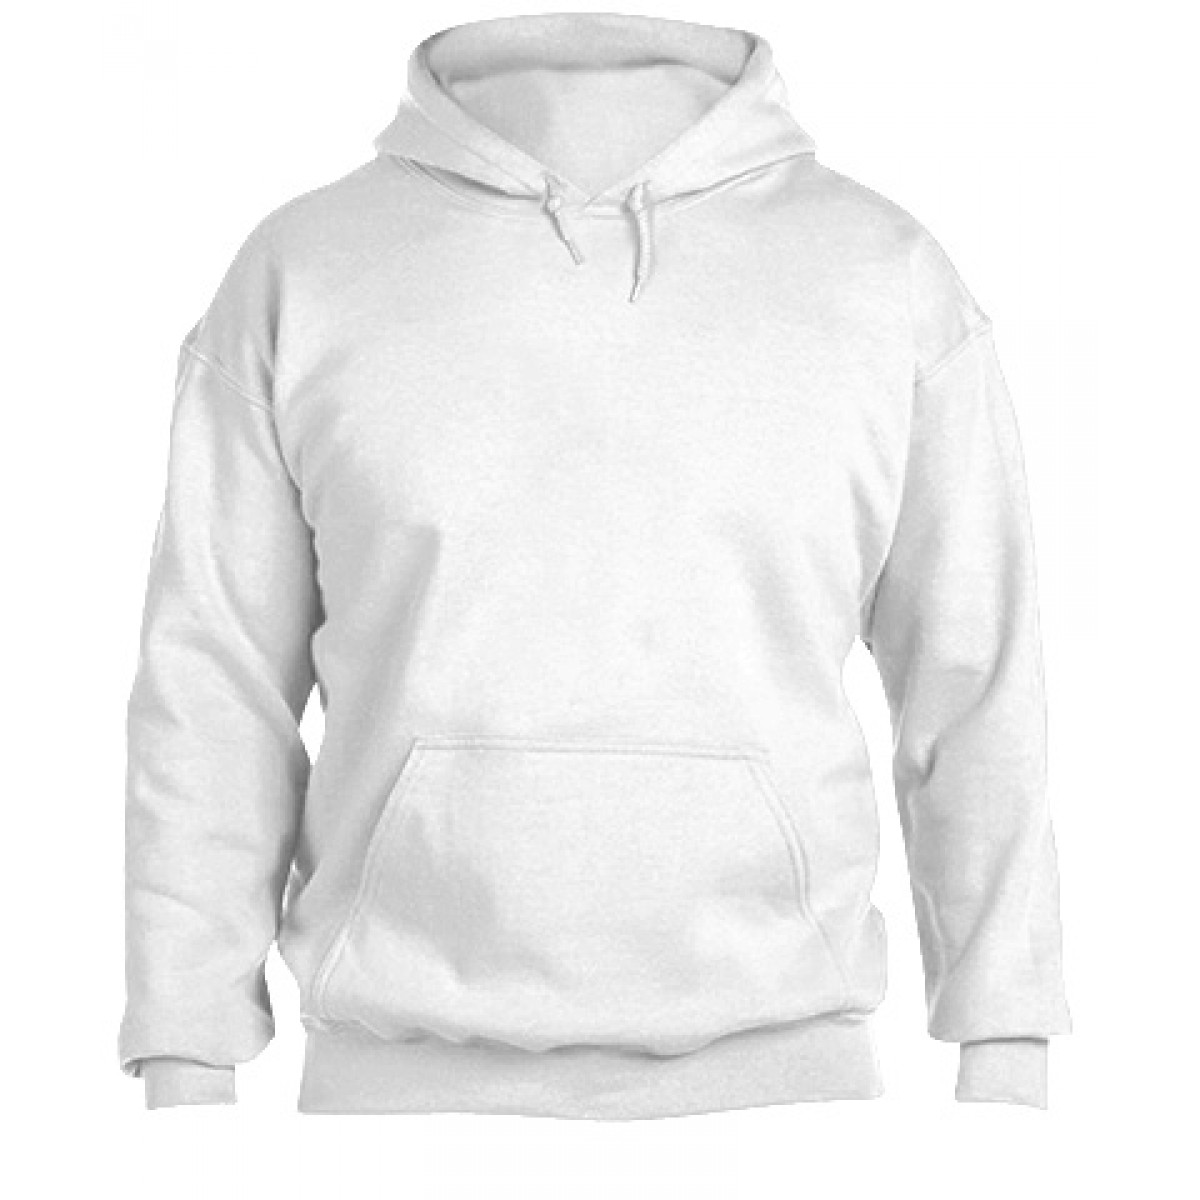 Hooded Sweatshirt 50/50 Heavy Blend -White-3XL